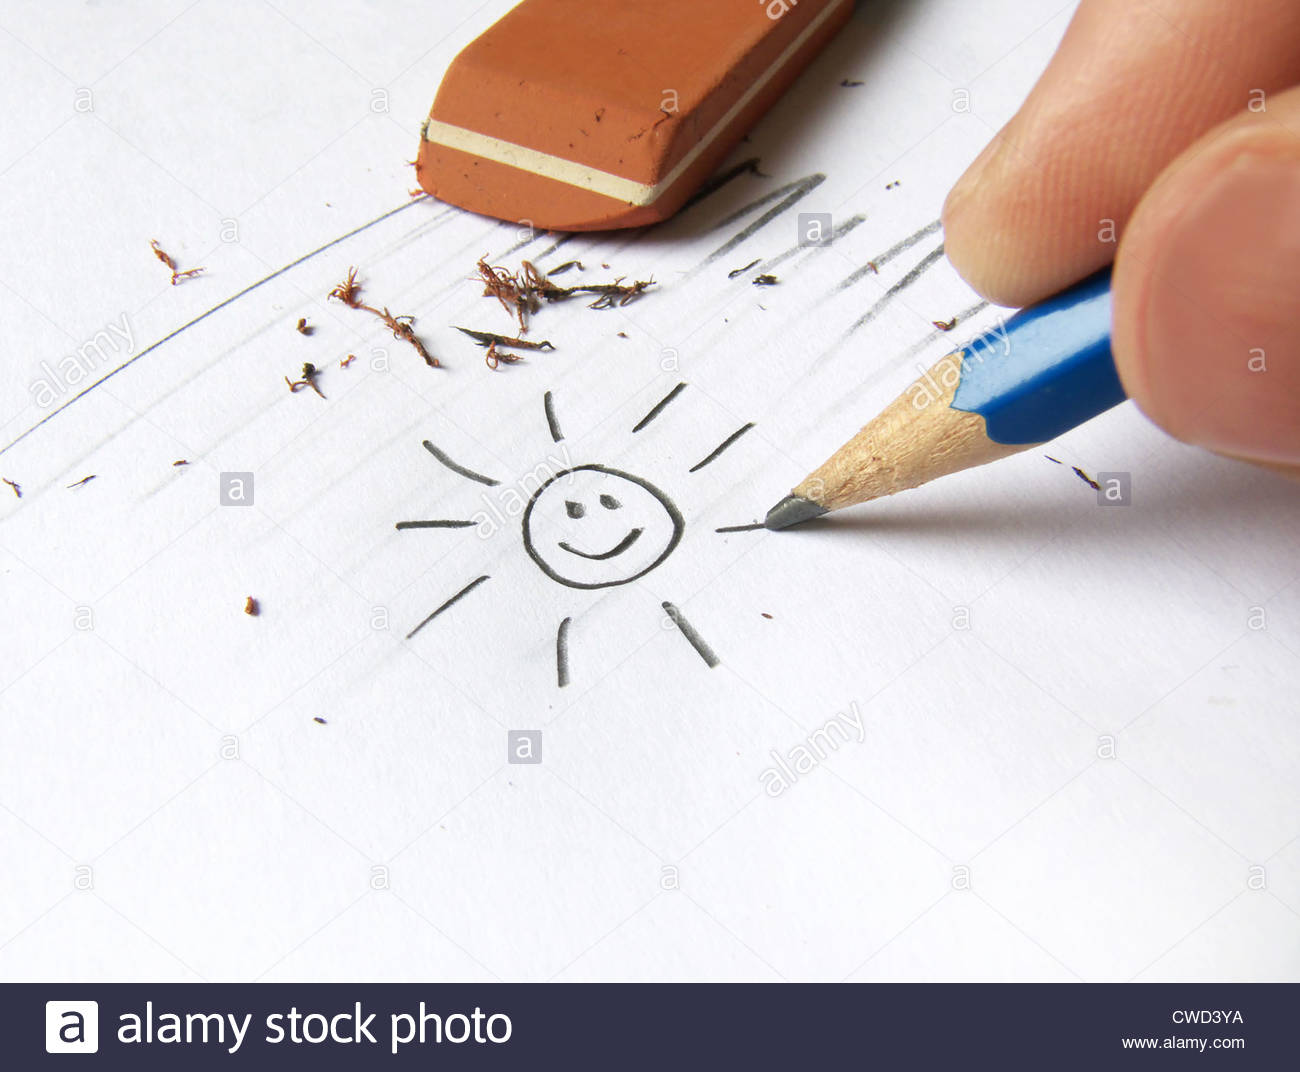 1300x1072 Sun,drawing,pencil Drawing Stock Photo, Royalty Free Image